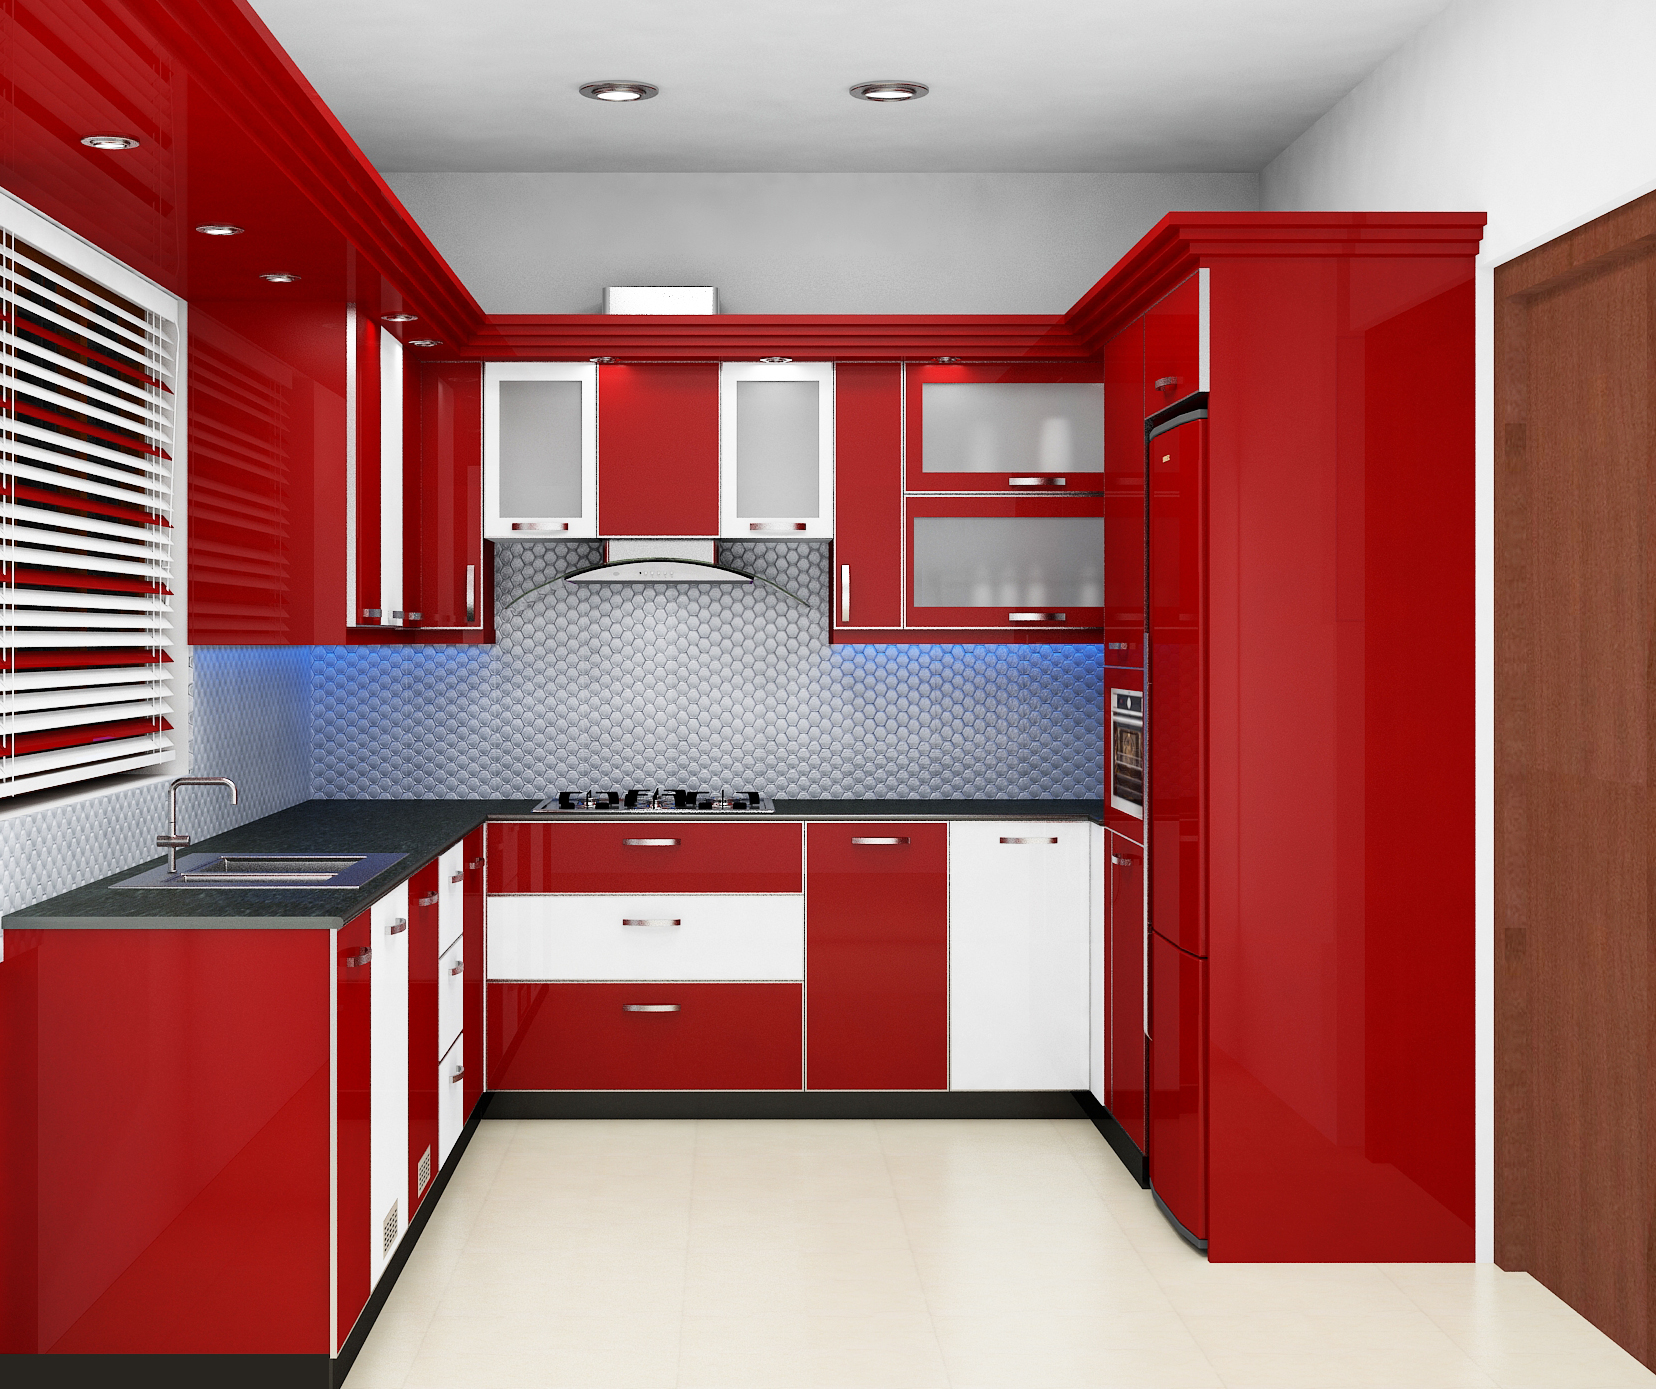 Exemplary and amazing modular kitchen home interior design for House interior design pictures